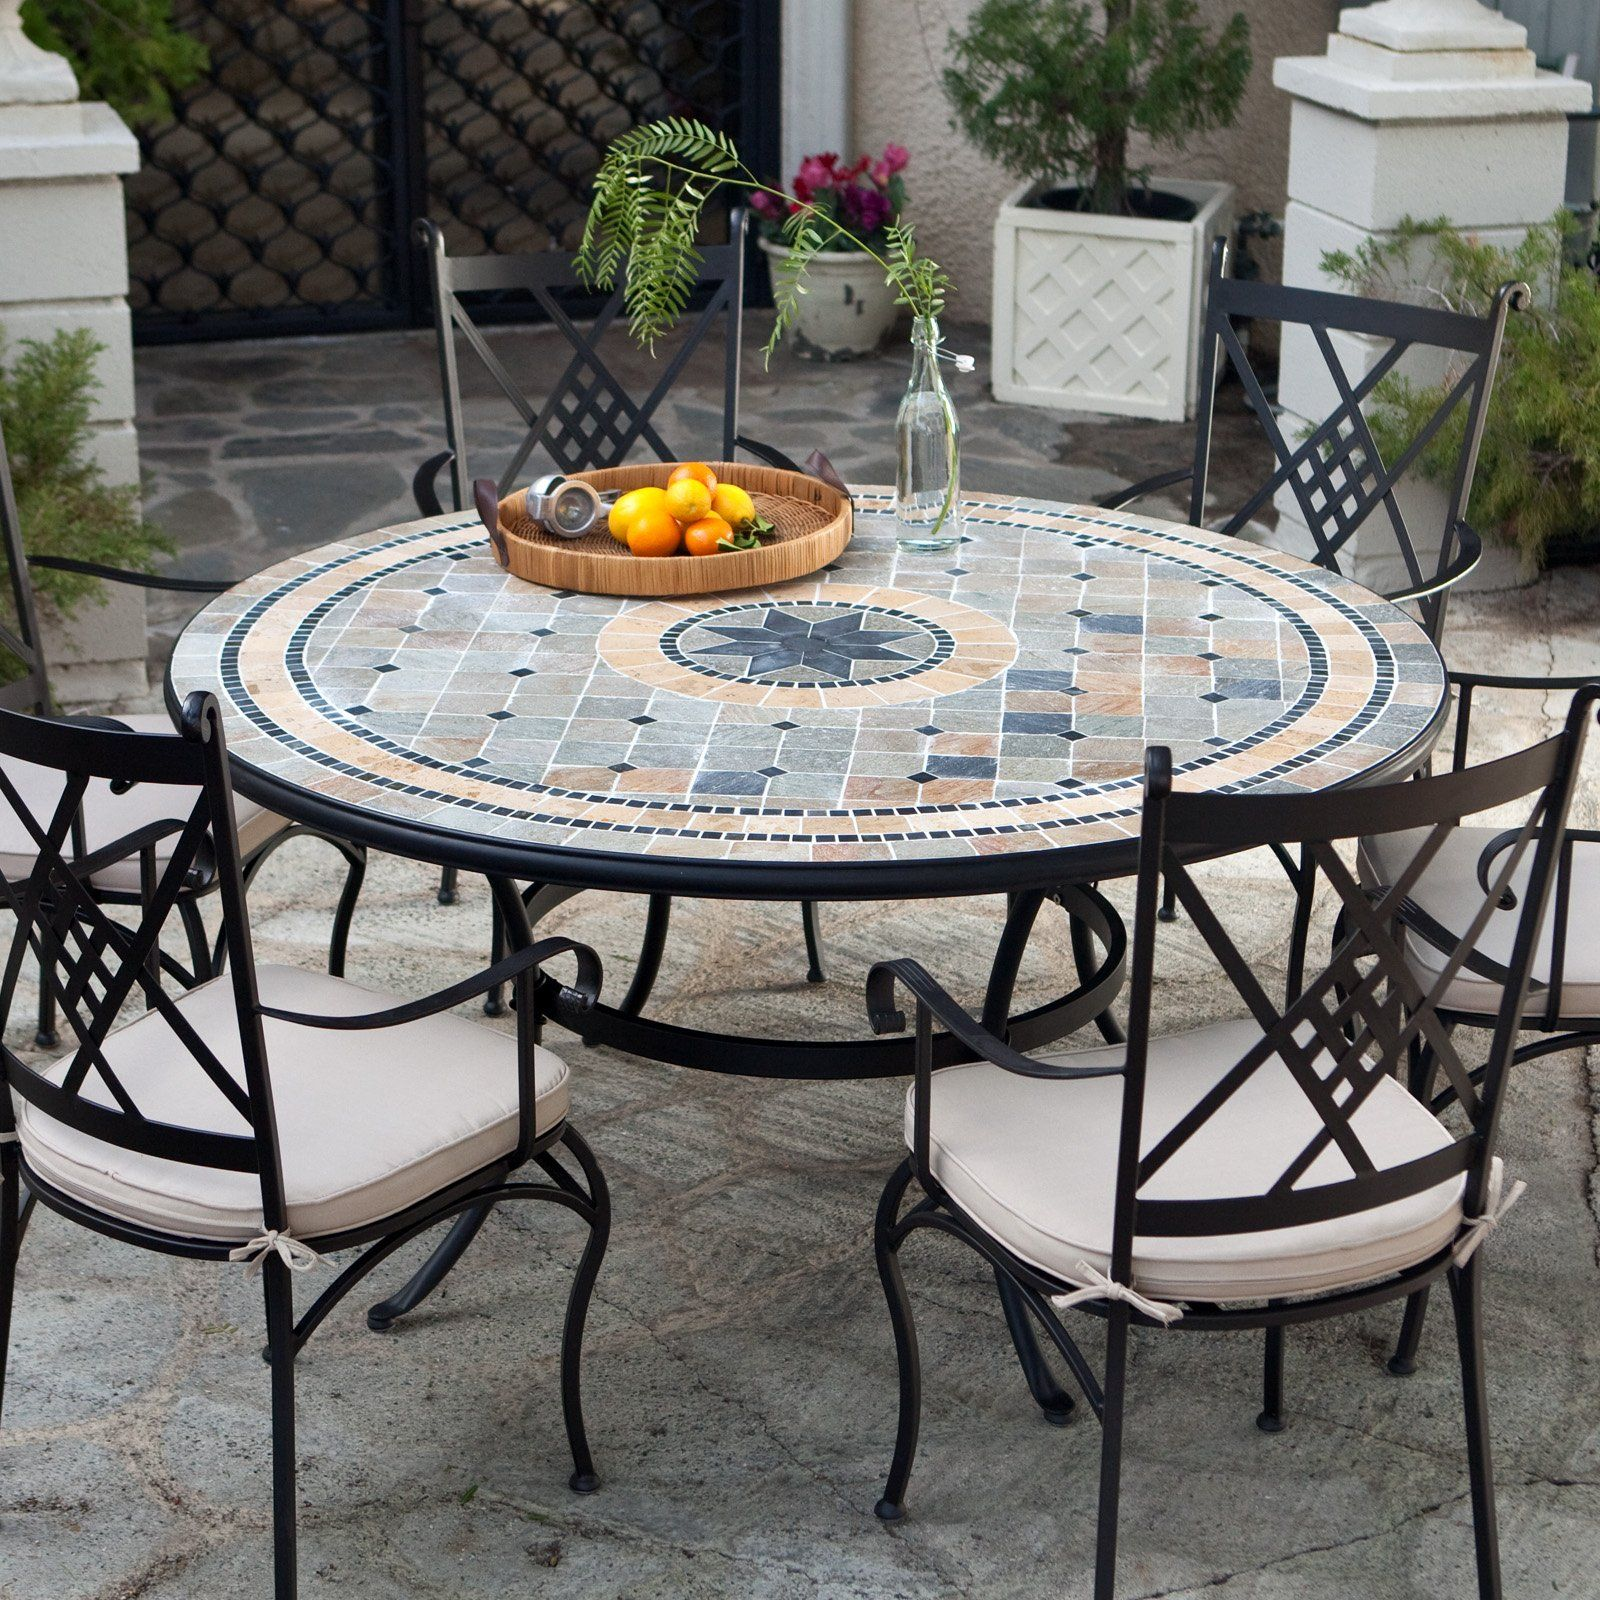 Have to have it. Palazetto Barcelona 60-in. Round Mosaic Patio Dining Set -  Seats 6 $2199.99